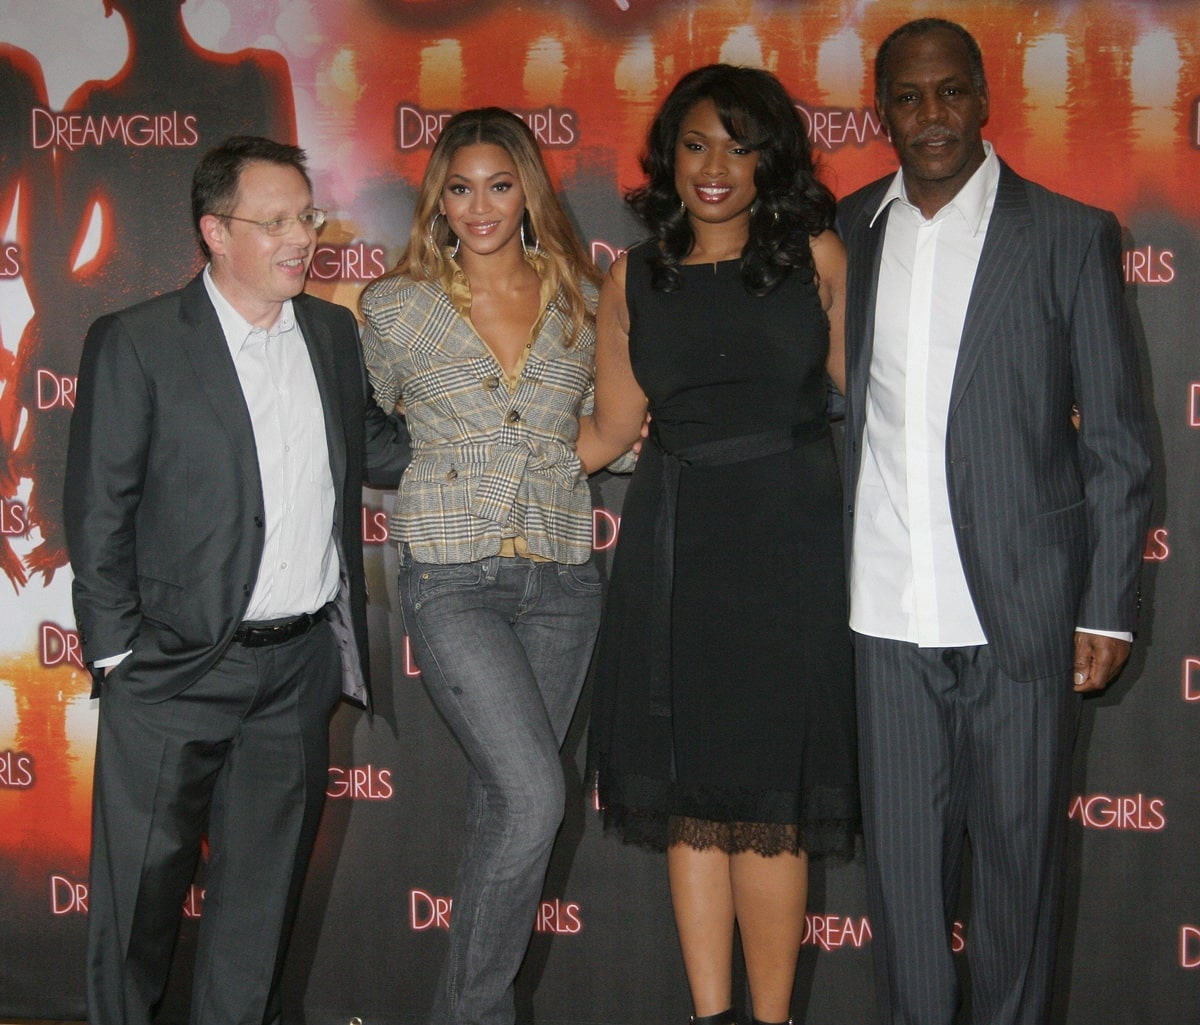 Director Bill Condon, Beyonce Knowles, Jennifer Hudson, and Danny Glover promoting Dreamgirls in Berlin